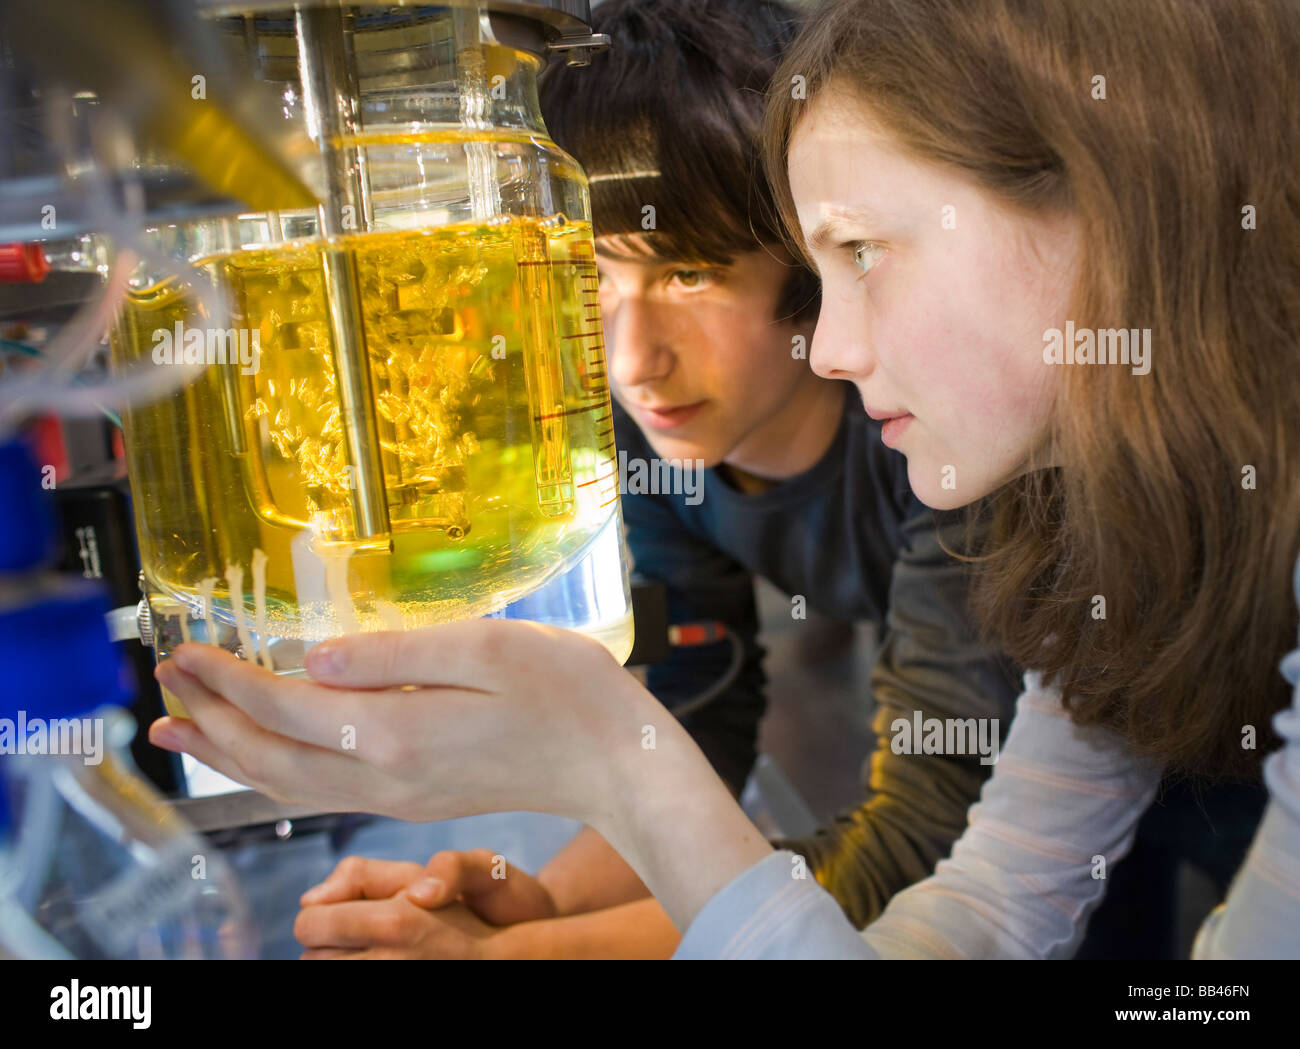 Students at chemistry class - Stock Image